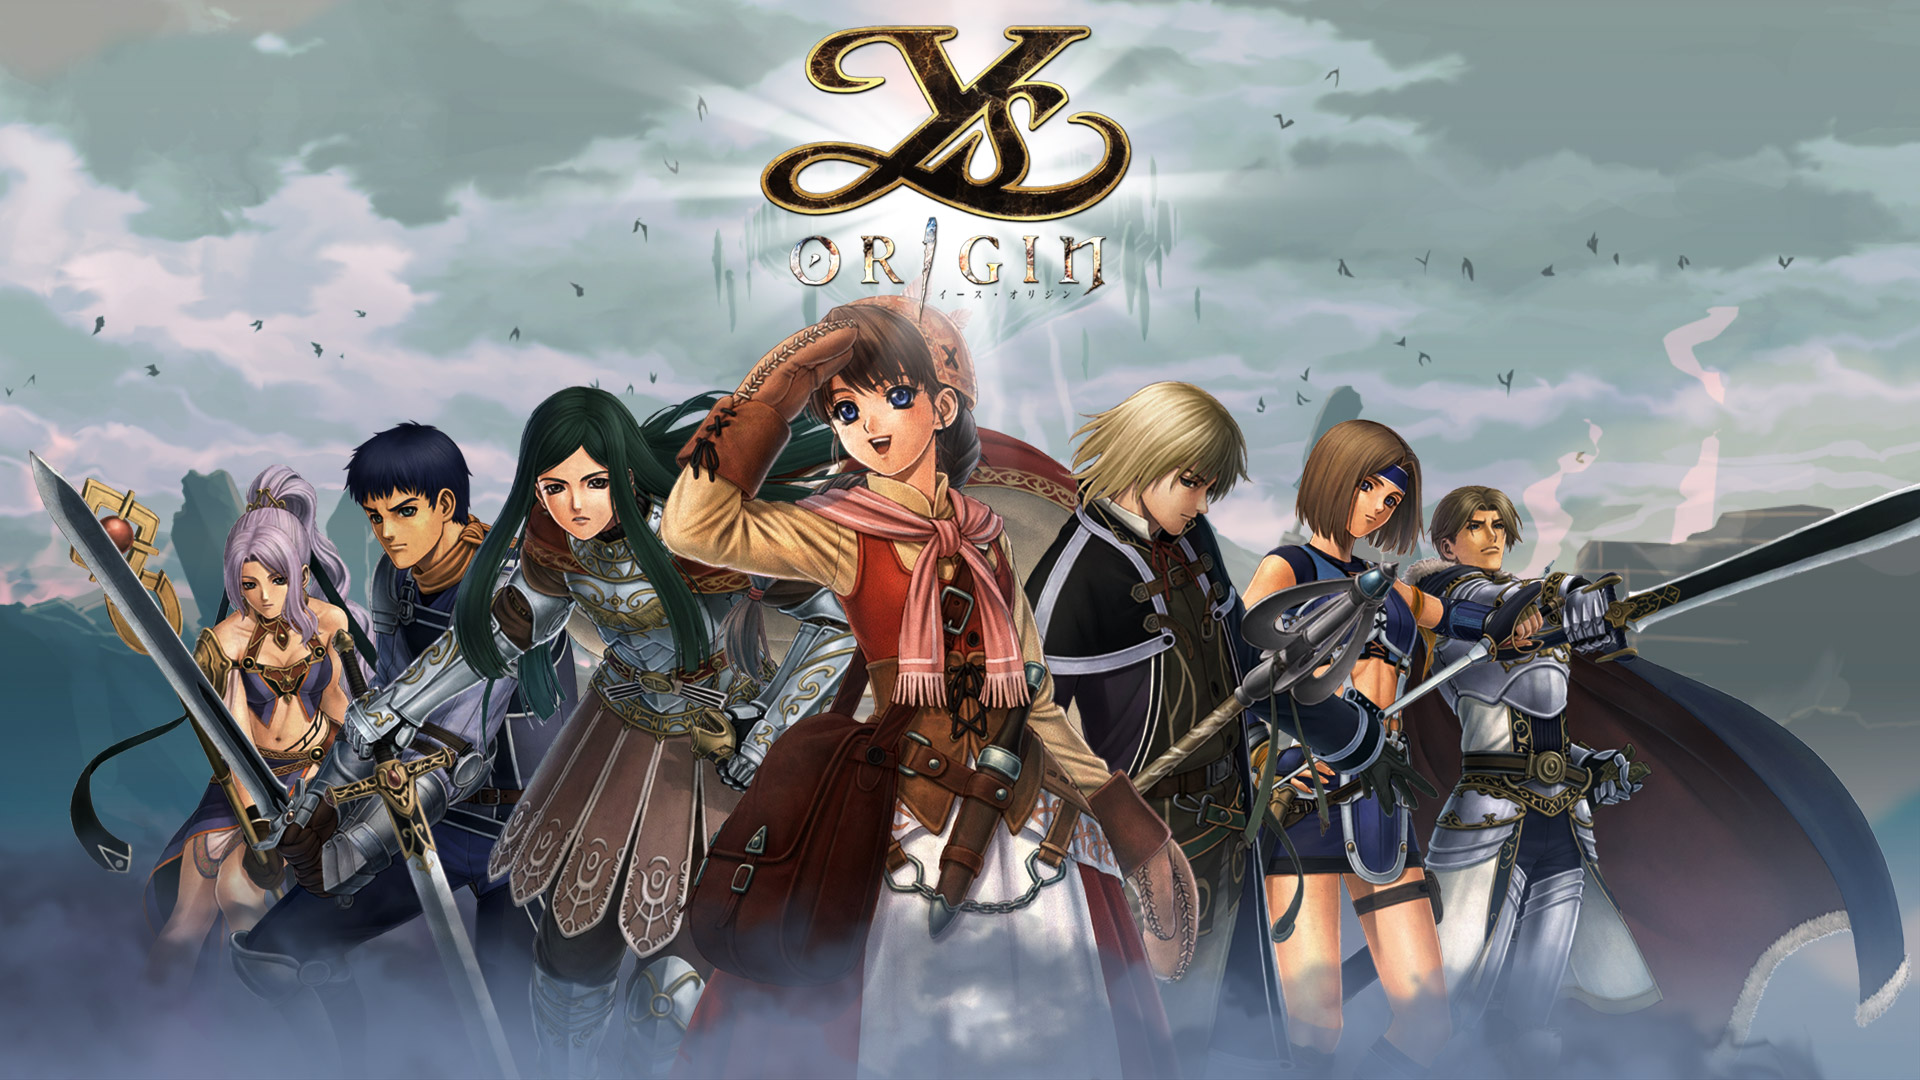 Free Ys Origin Wallpaper in 1920x1080